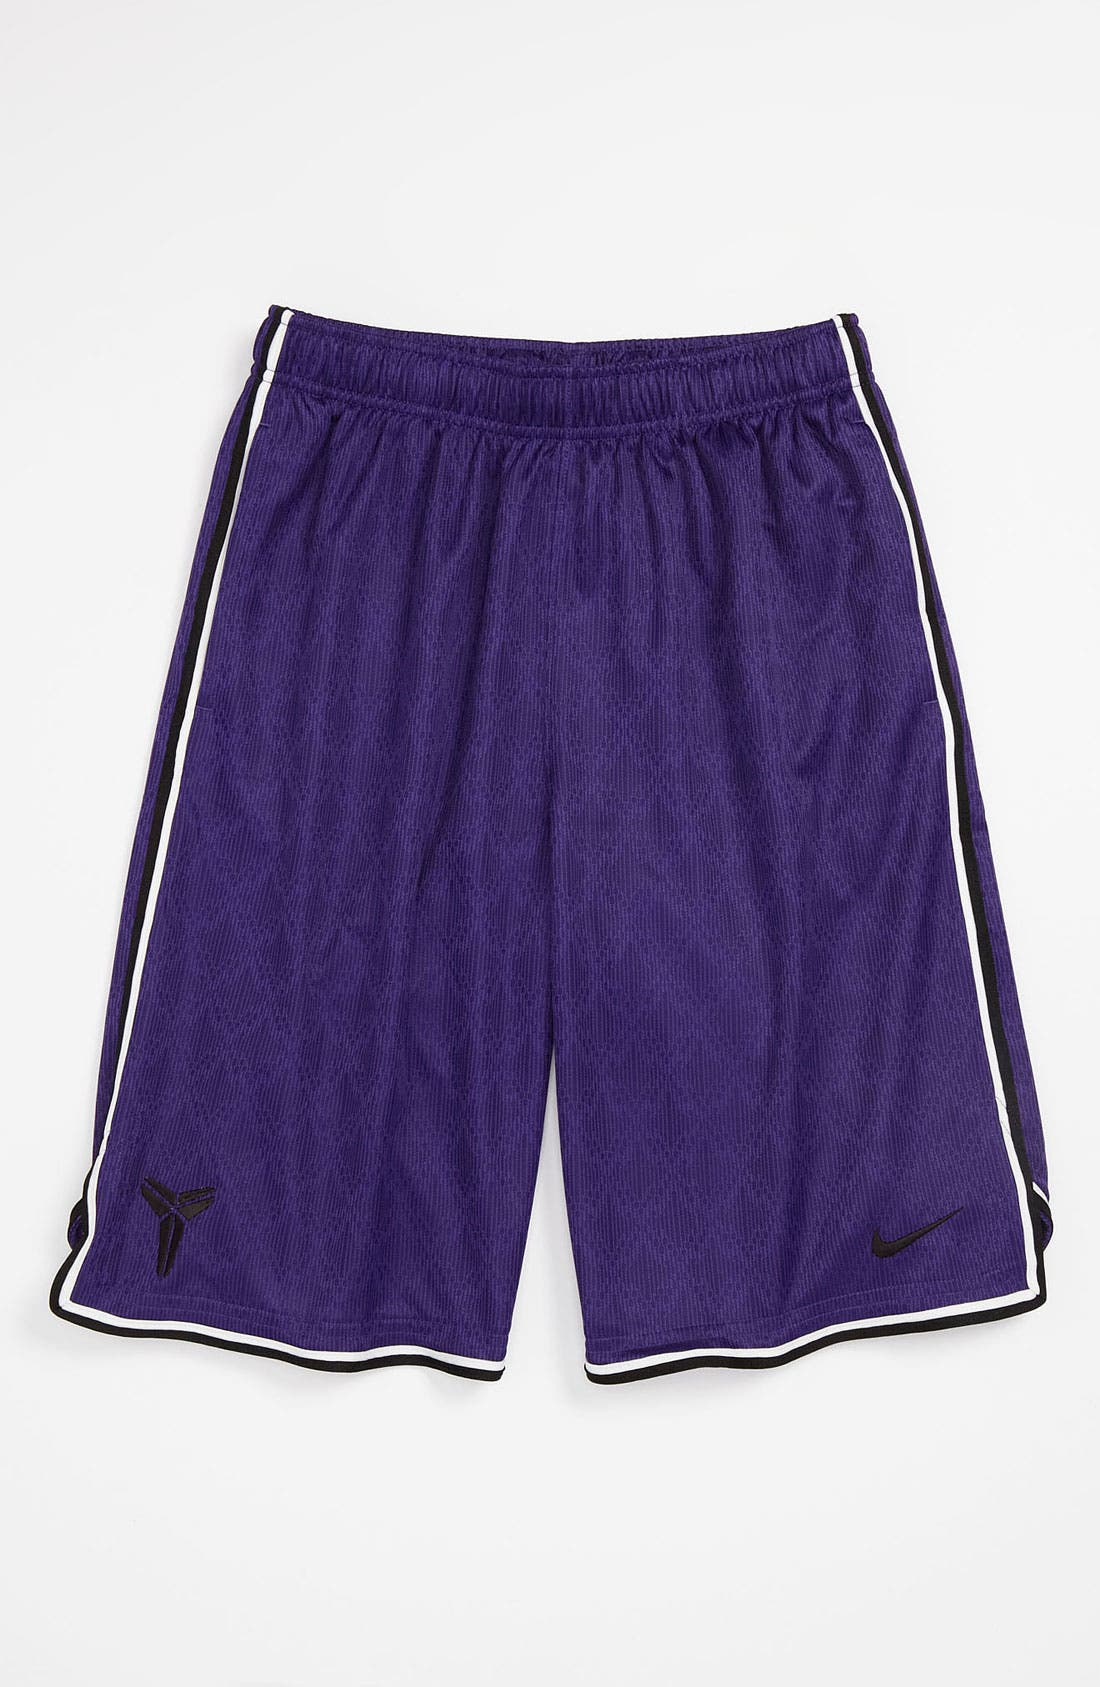 Alternate Image 1 Selected - Nike 'Kobe Essential' Shorts (Big Boys)